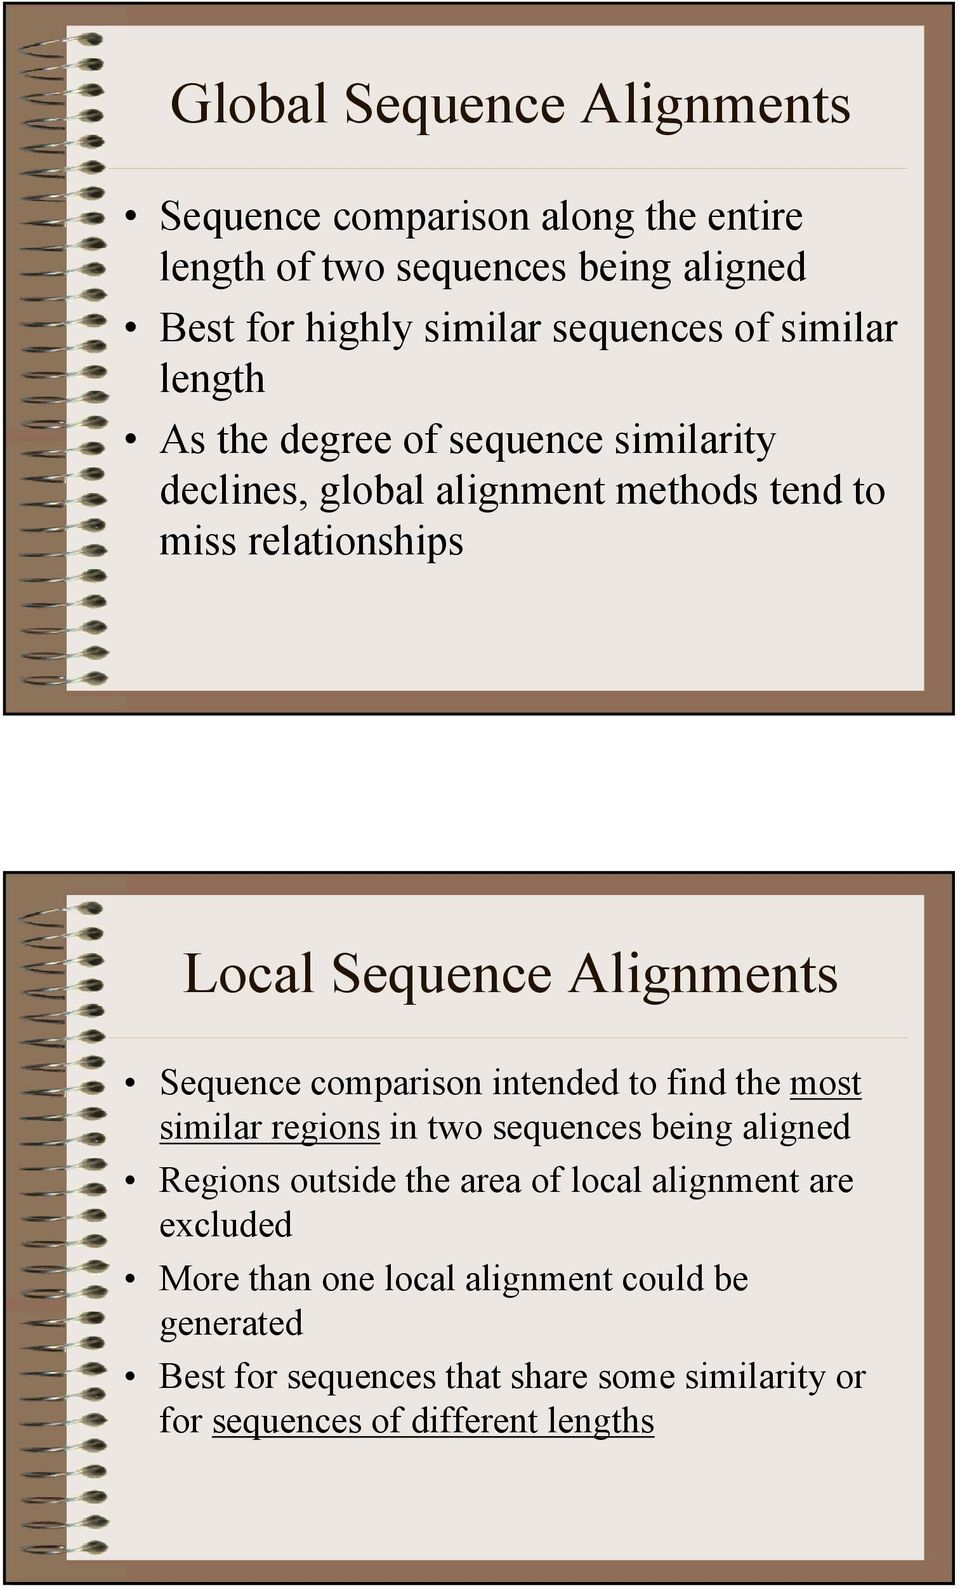 Sequence comparison intended to find the most similar regions in two sequences being aligned Regions outside the area of local alignment are